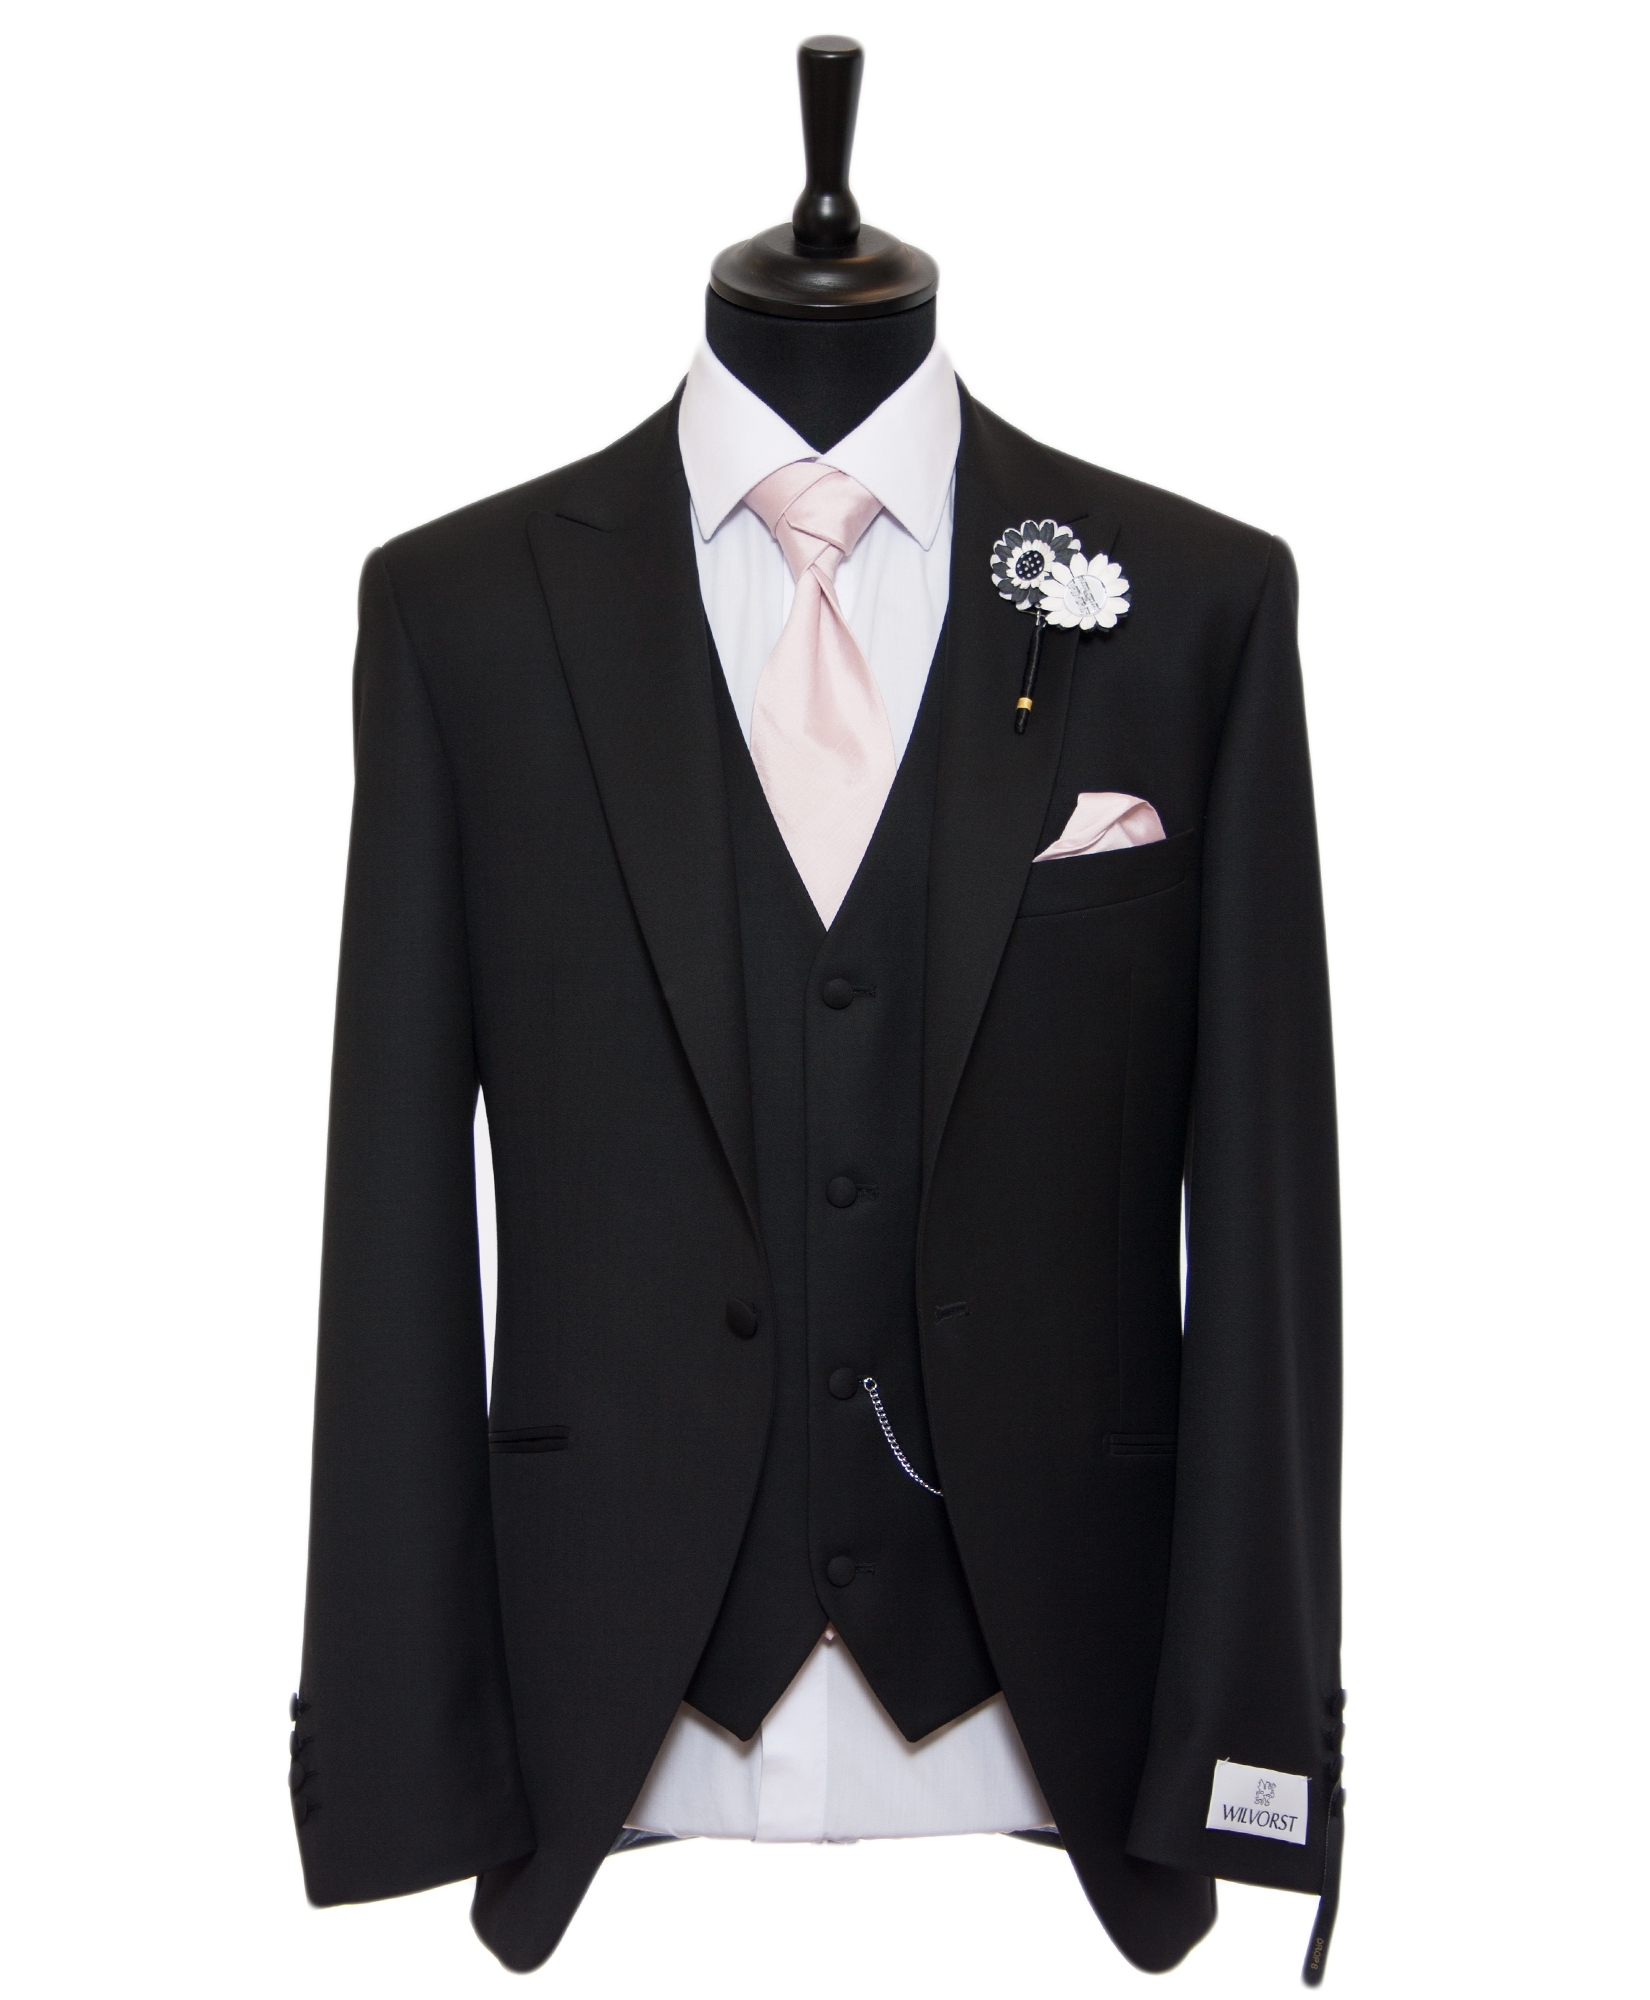 01_black bara carlton lounge suit.jpg: 5987 bytes